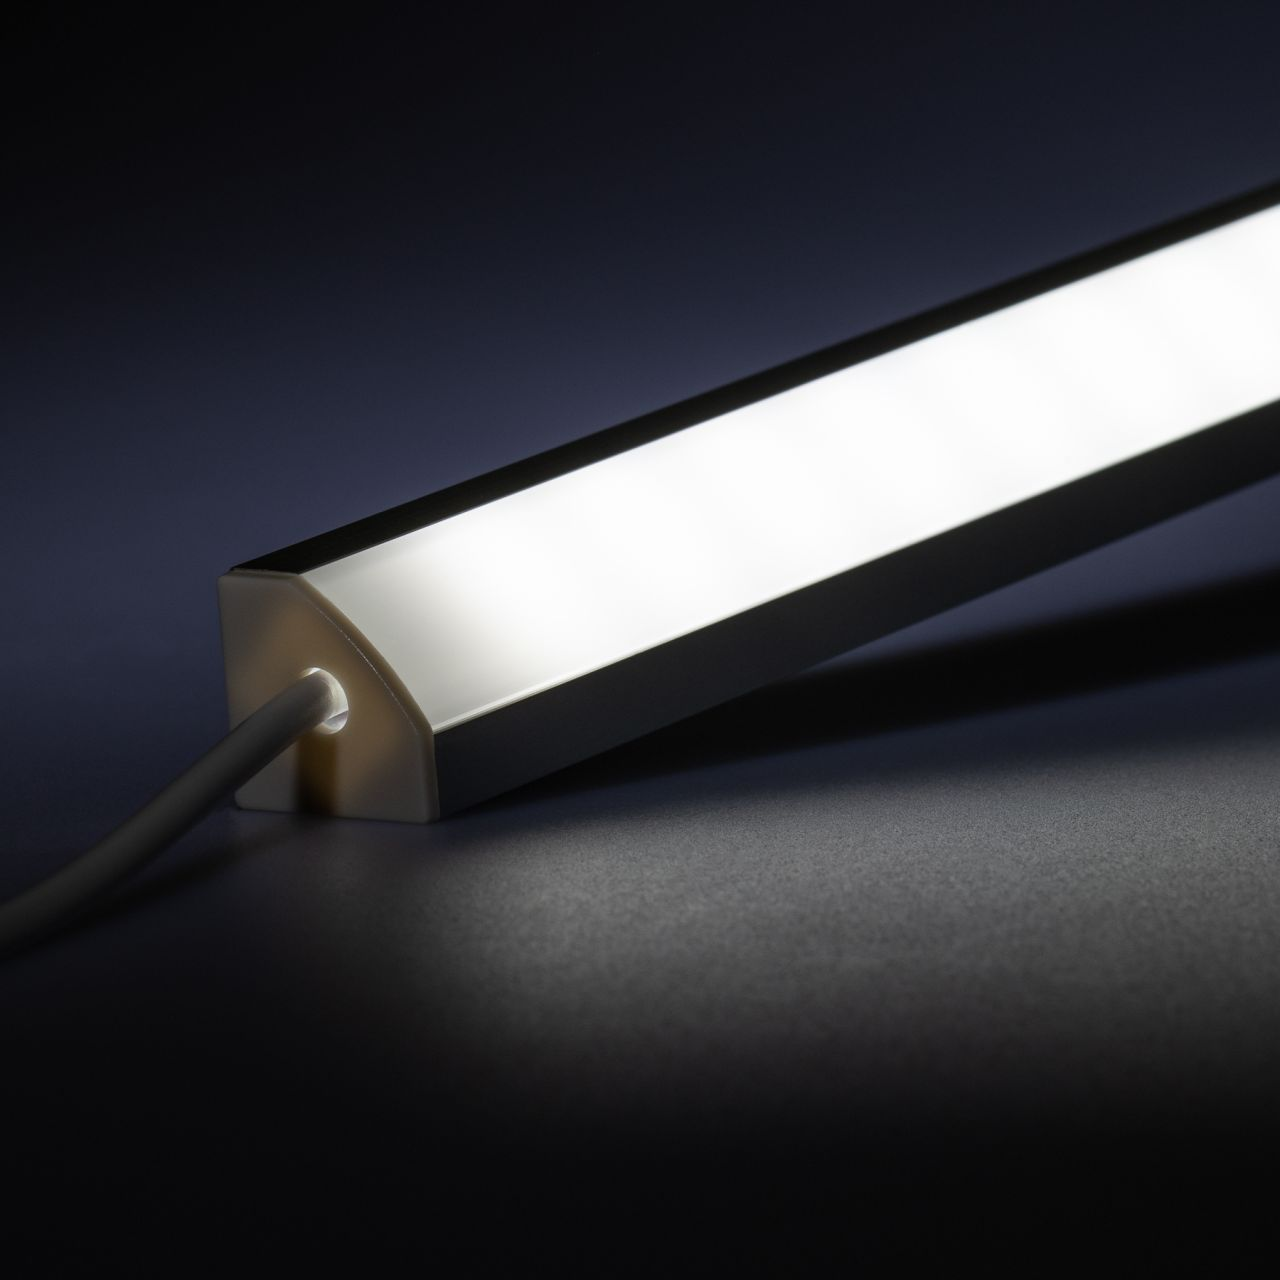 12V Aluminium LED Eckleiste – High Power - weiß – diffuse Abdeckung